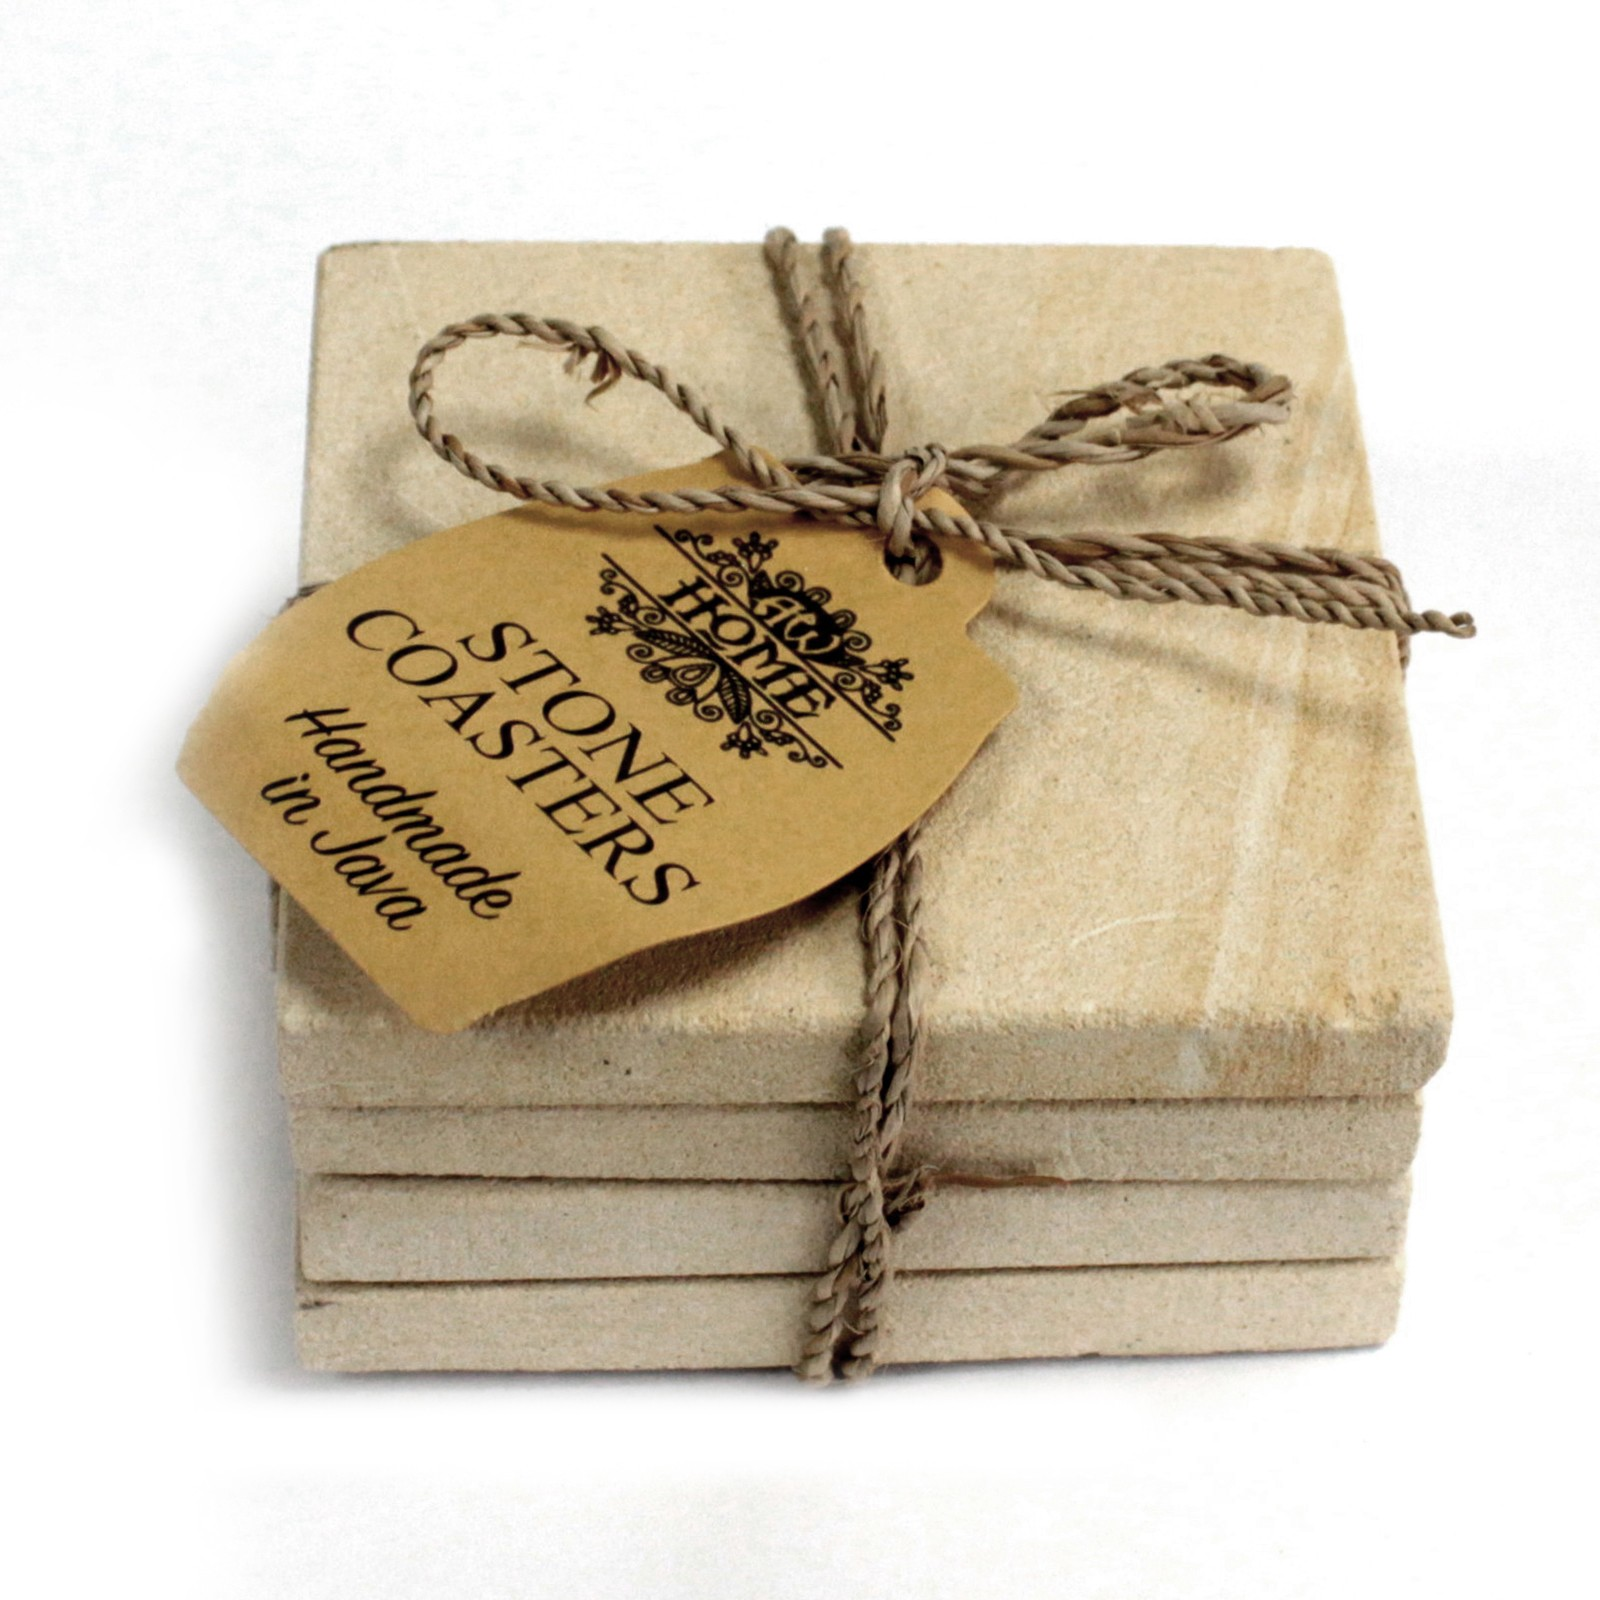 Set of 4 Stone Coasters - Square - Simple Sandstone 9cm